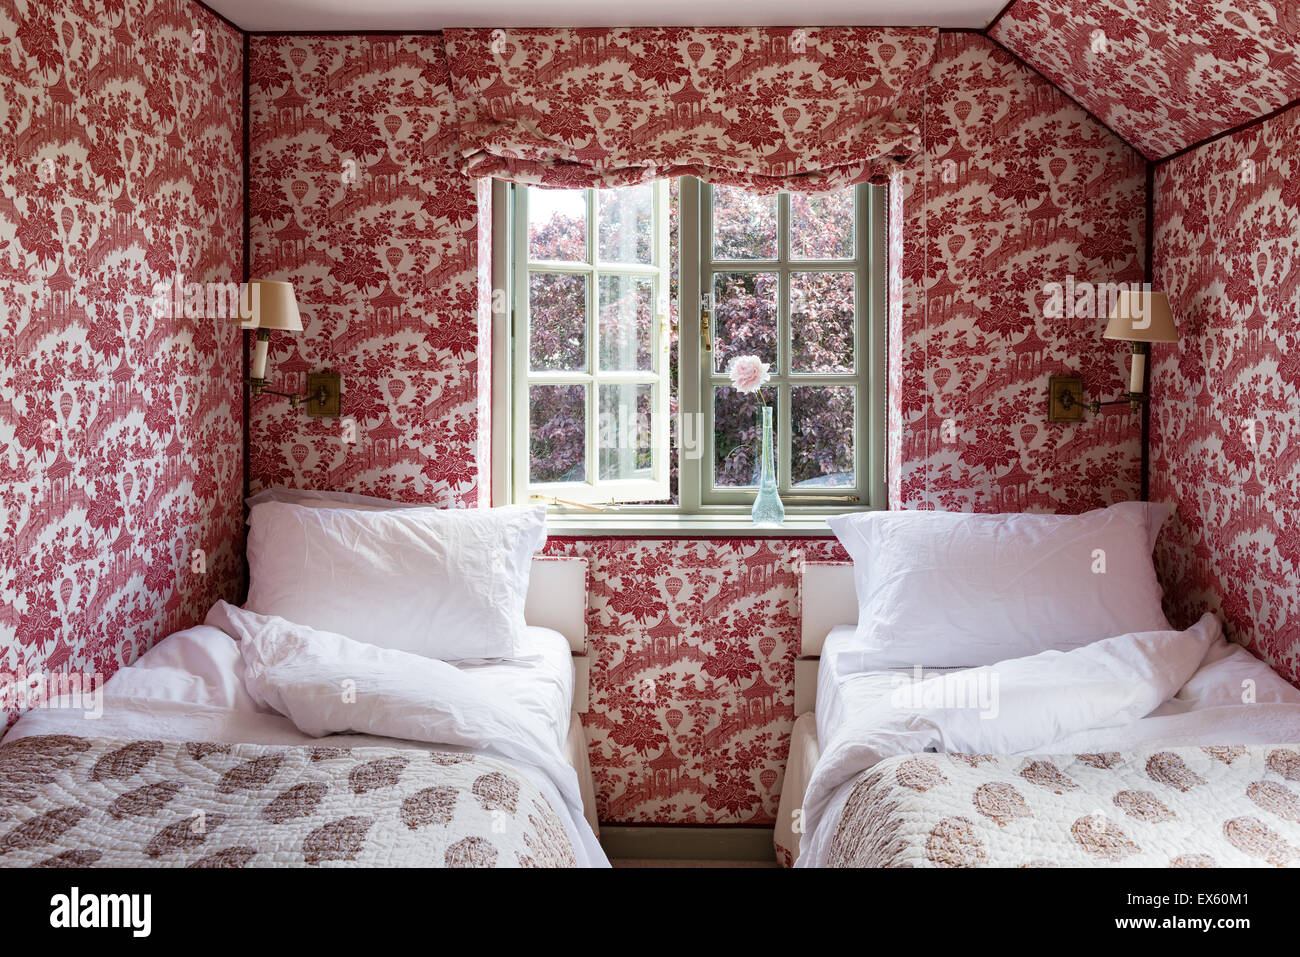 Christopher howe toile wallpaper and blind in twin bedroom for Wallpaper designs for bedroom indian